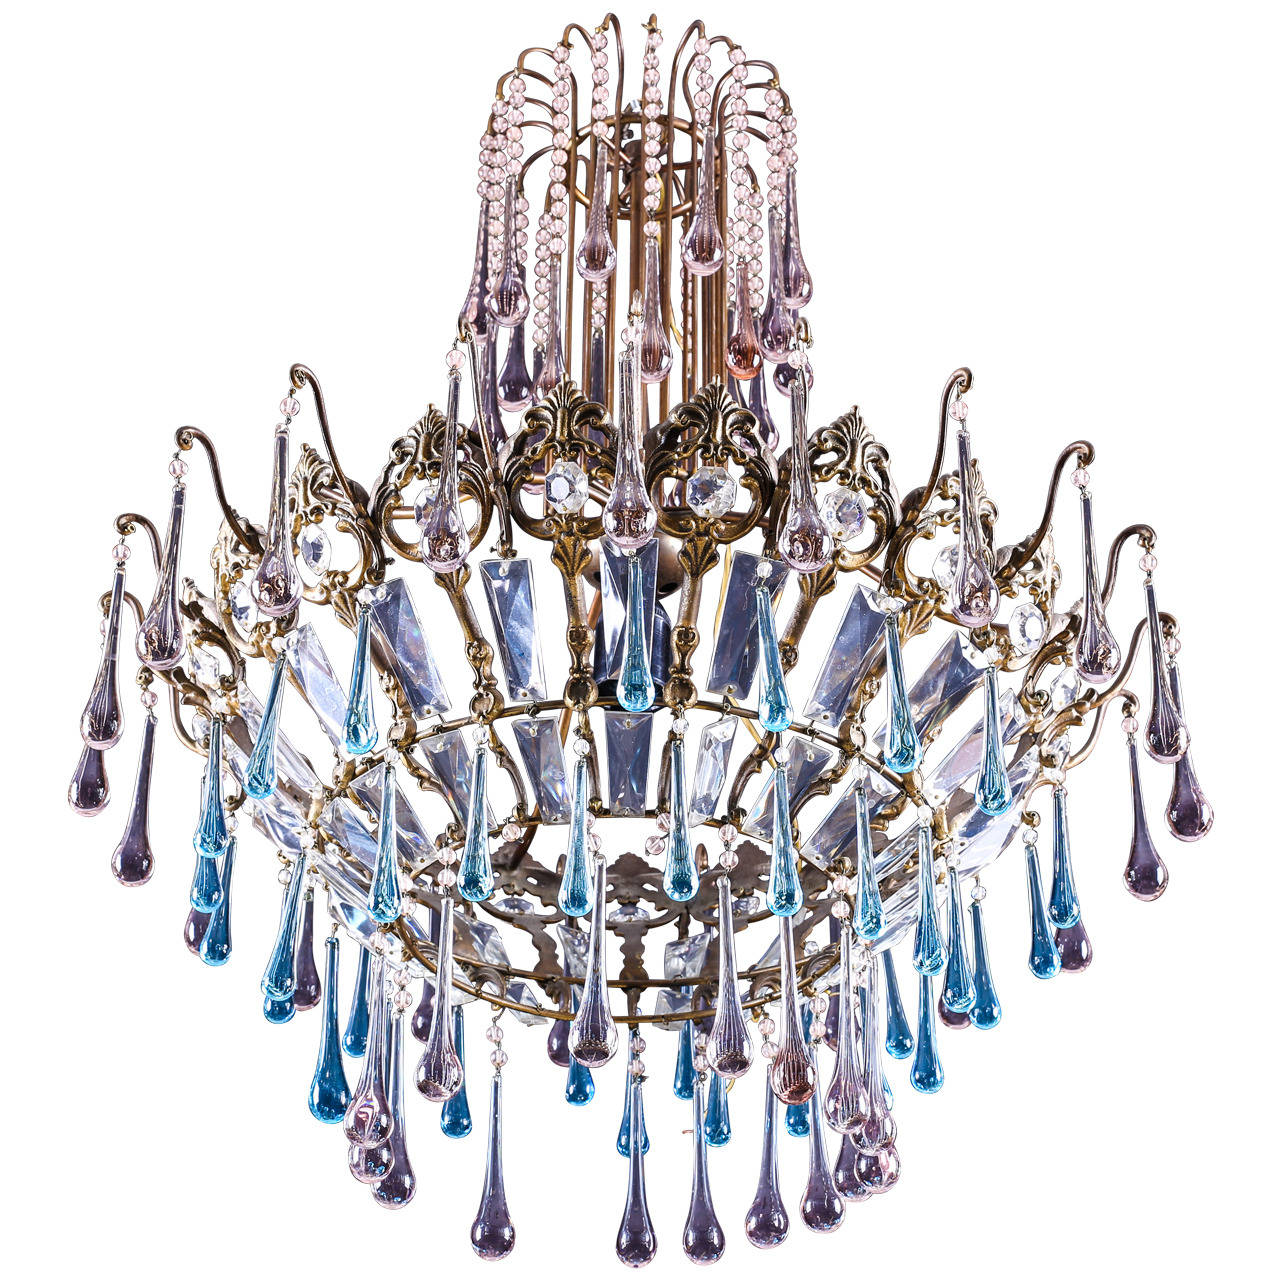 Vintage brass and crystal chandelier with murano light blue glass vintage brass and crystal chandelier with murano light blue glass tear drops for sale mozeypictures